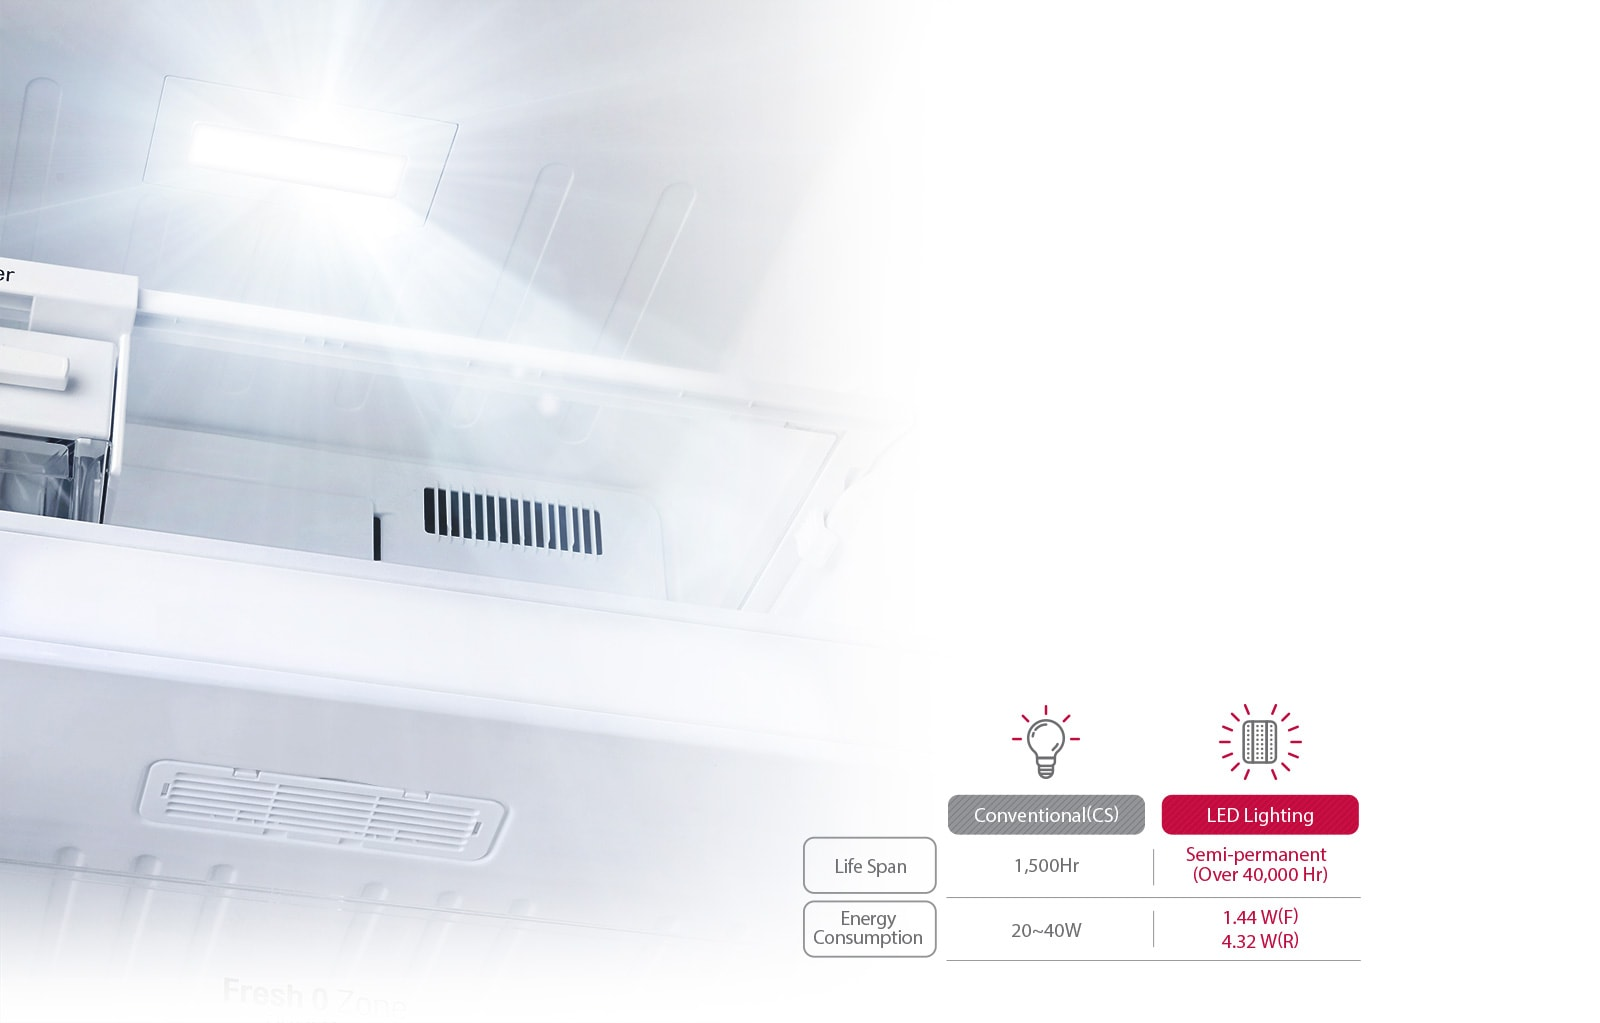 LG GL-T292SPZ3 260 Ltr LED Lighting